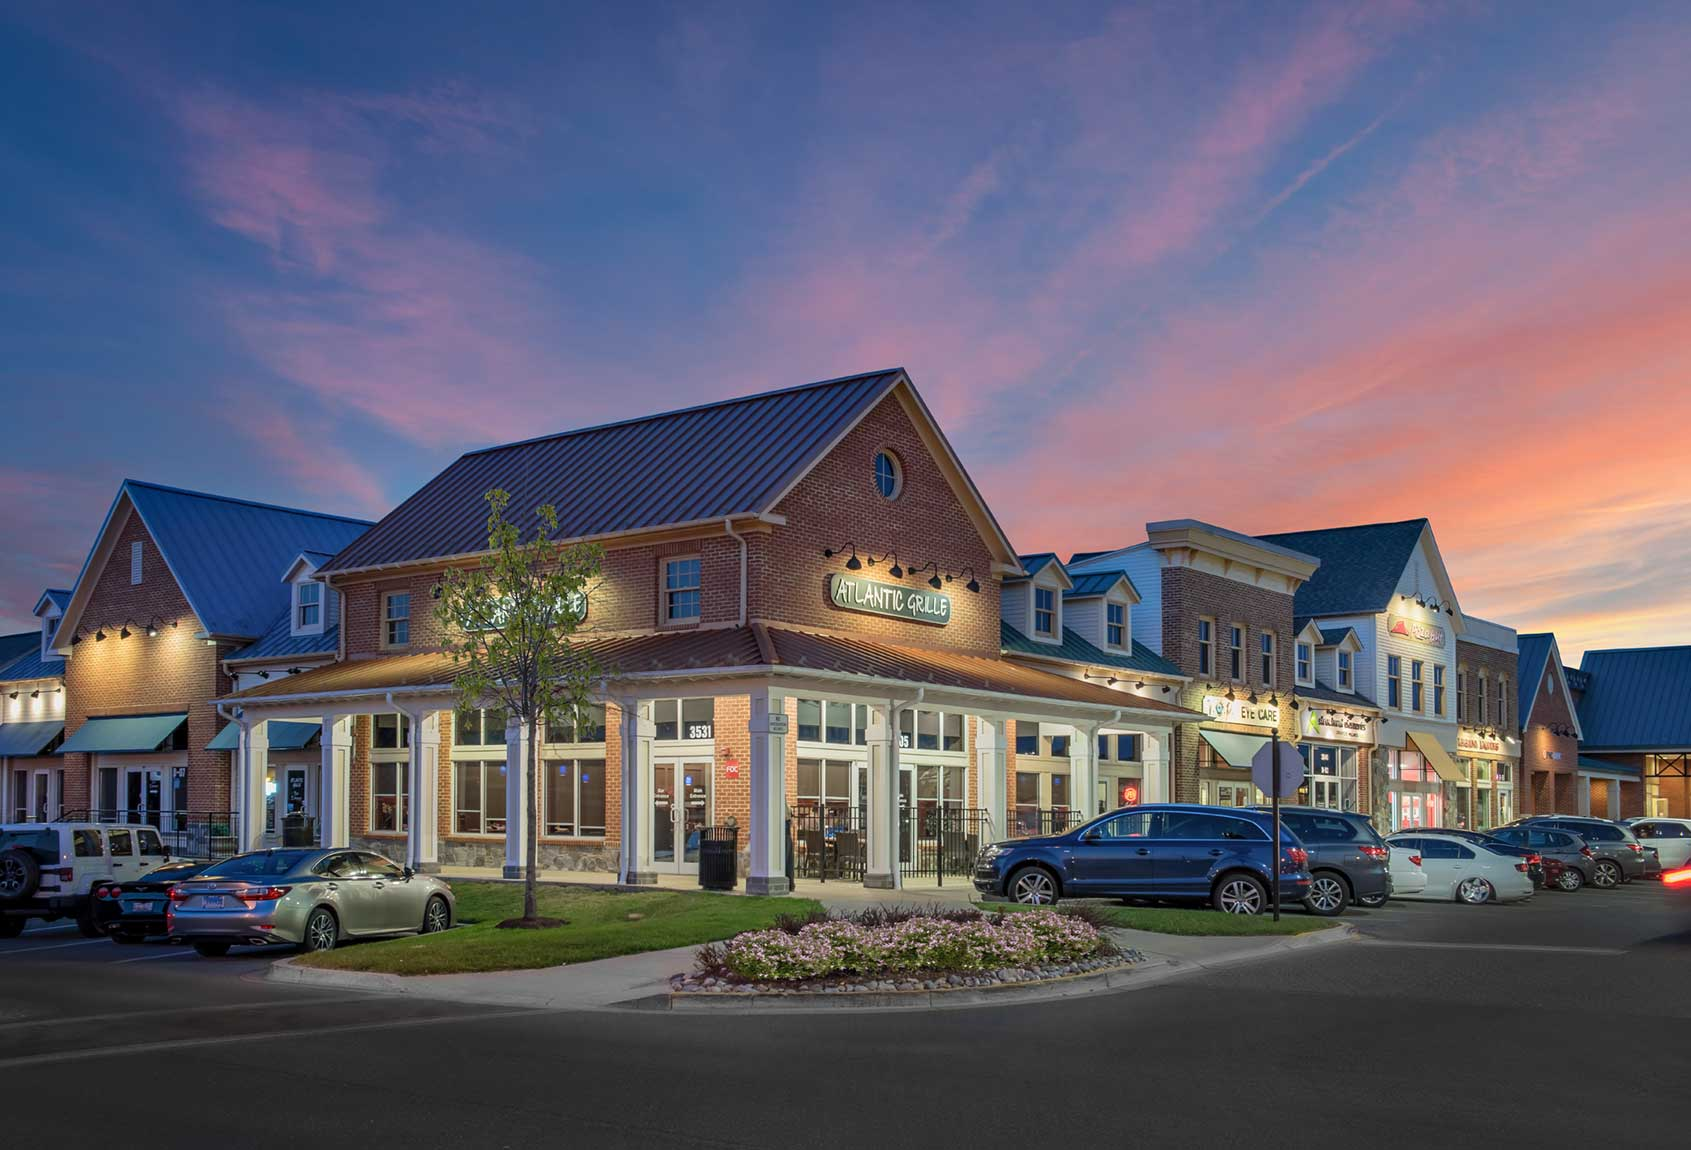 Atlantic Grille restaurant in strip mall with beautiful sky